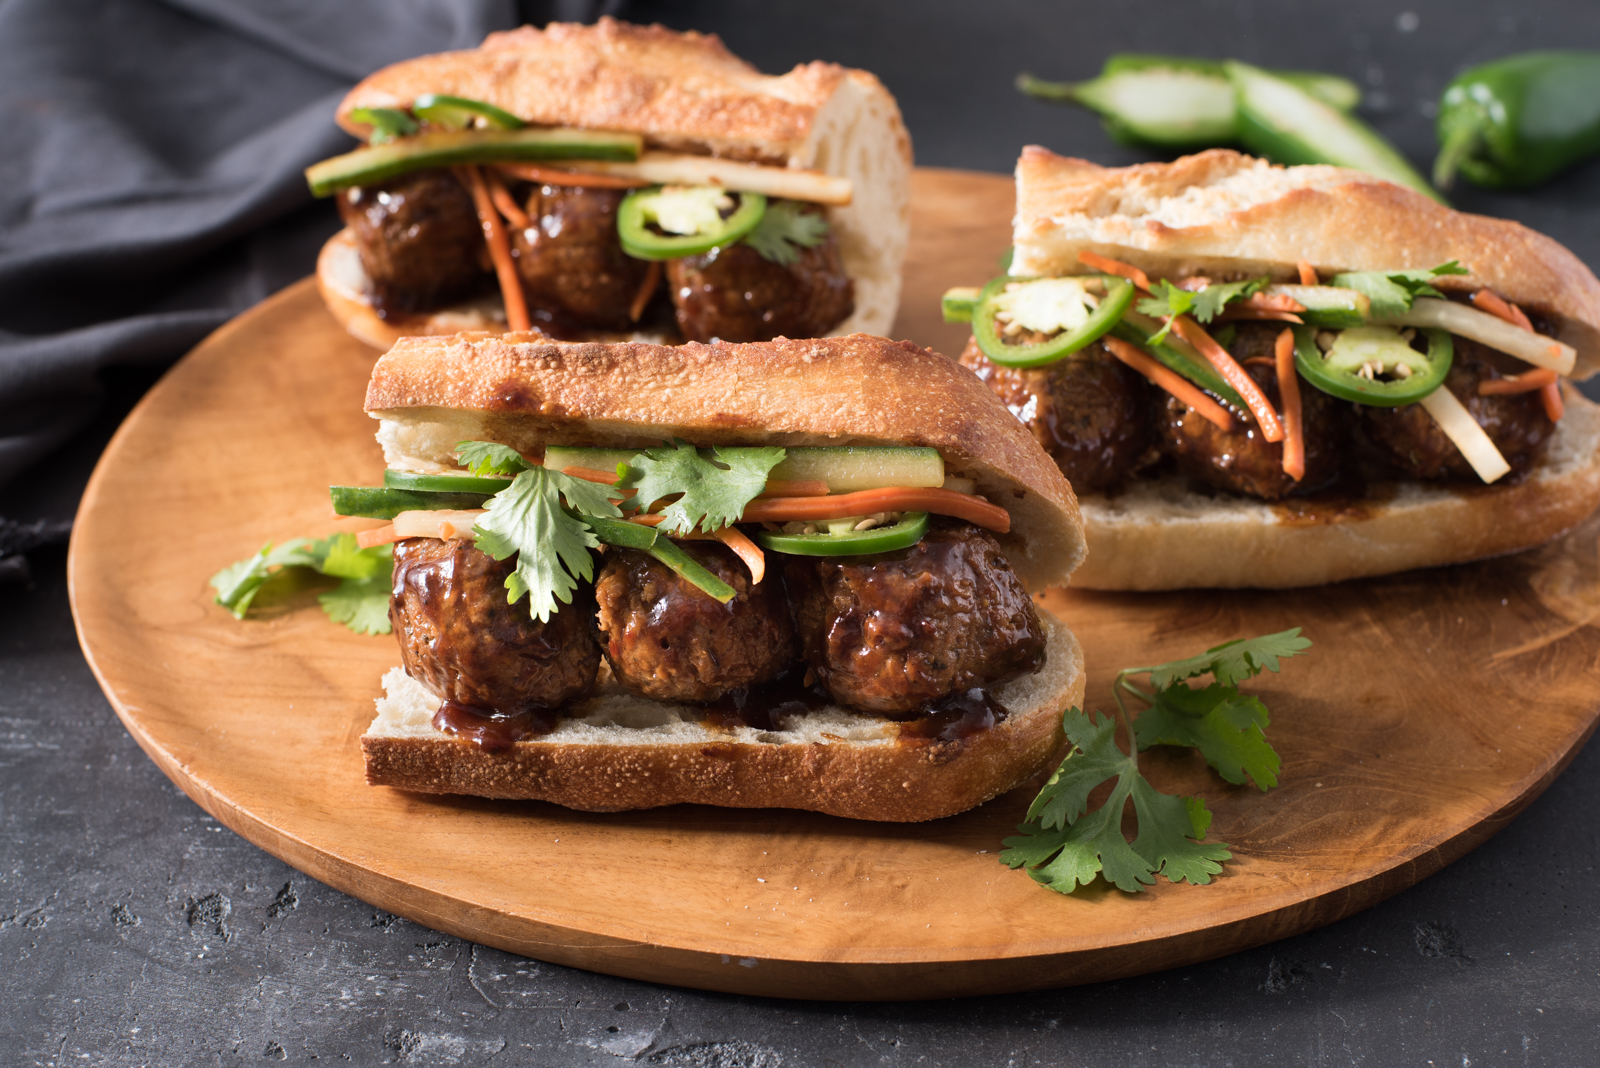 This meatless take on a classic Vietnamese sandwich is loaded with lots of fresh quick-pickled veggies.